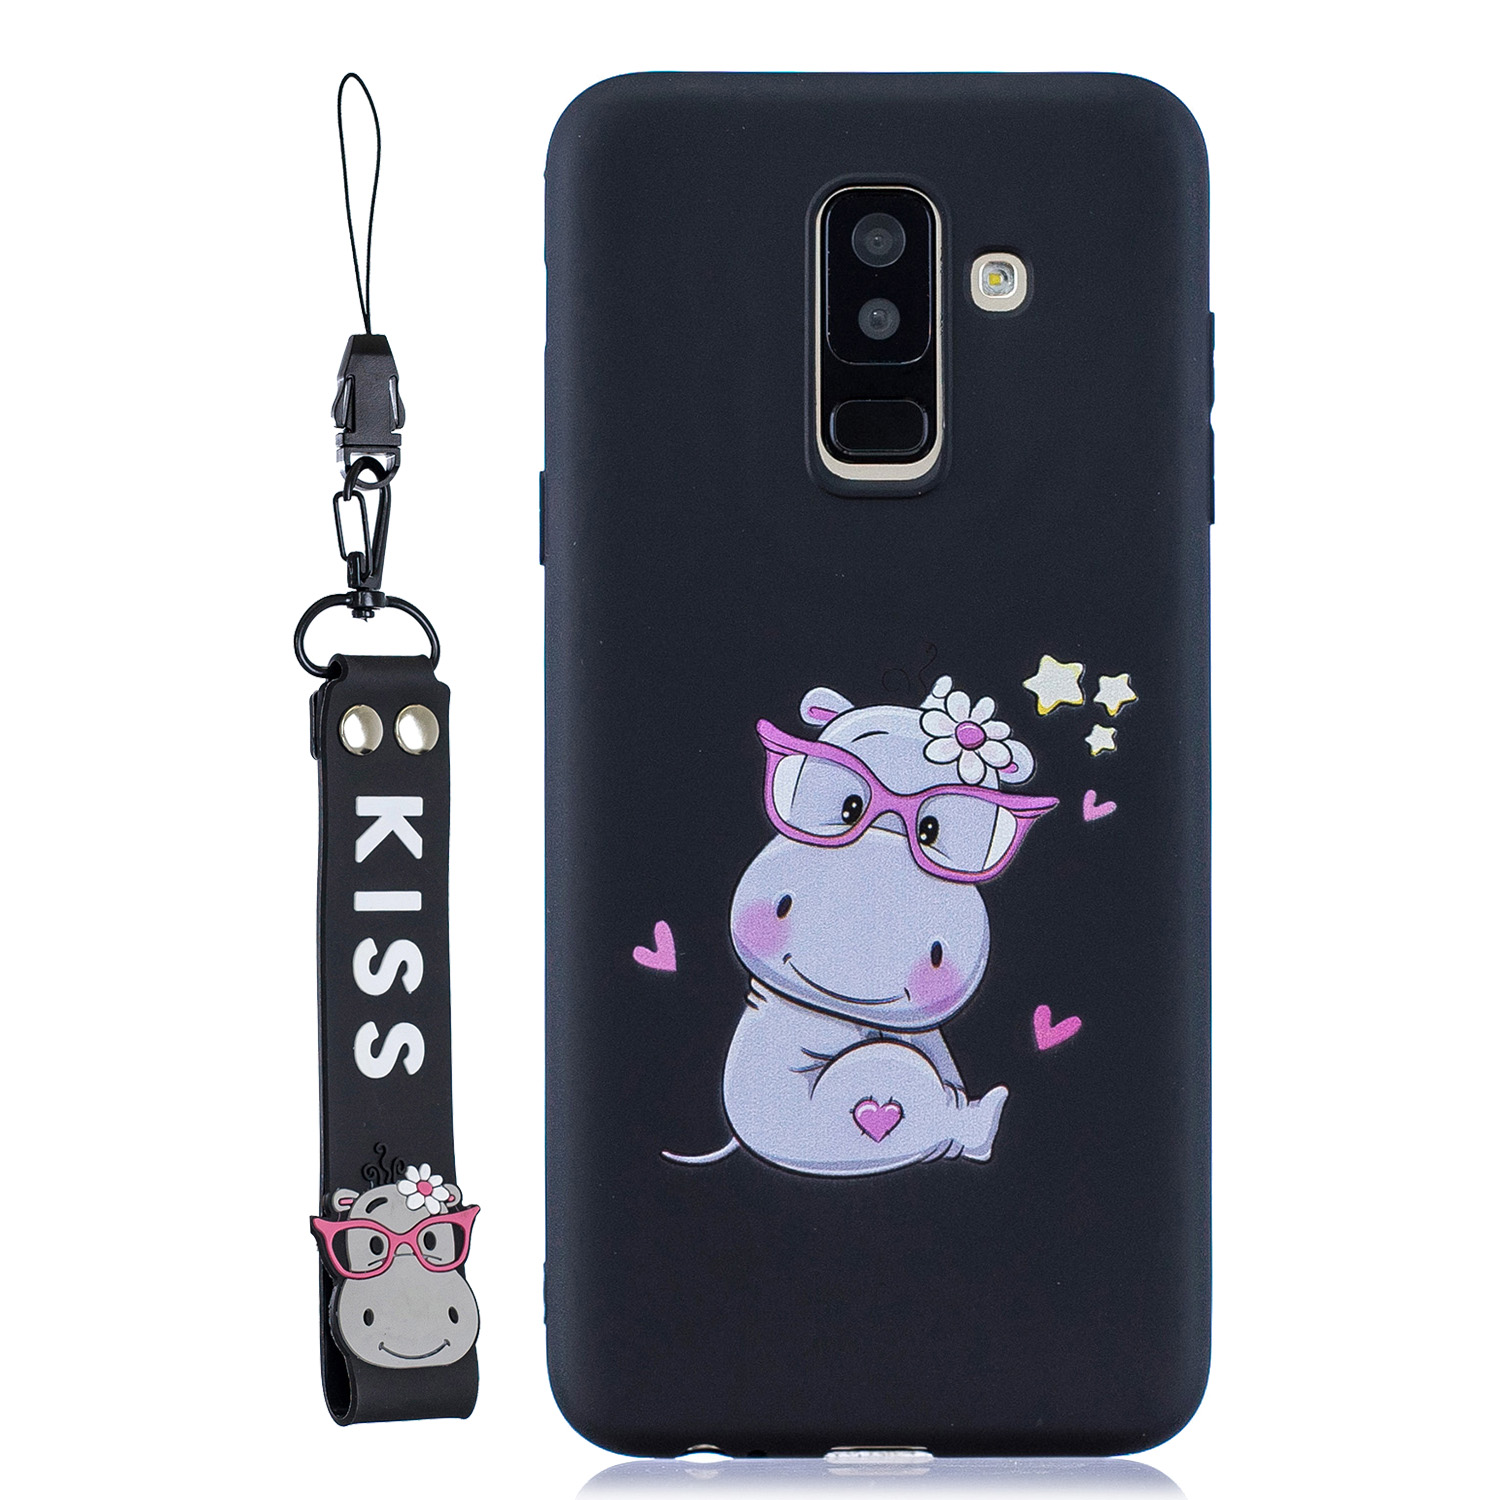 For Samsung A6 plus 2018 Cute Coloured Painted TPU Anti-scratch Non-slip Protective Cover Back Case with Lanyard black